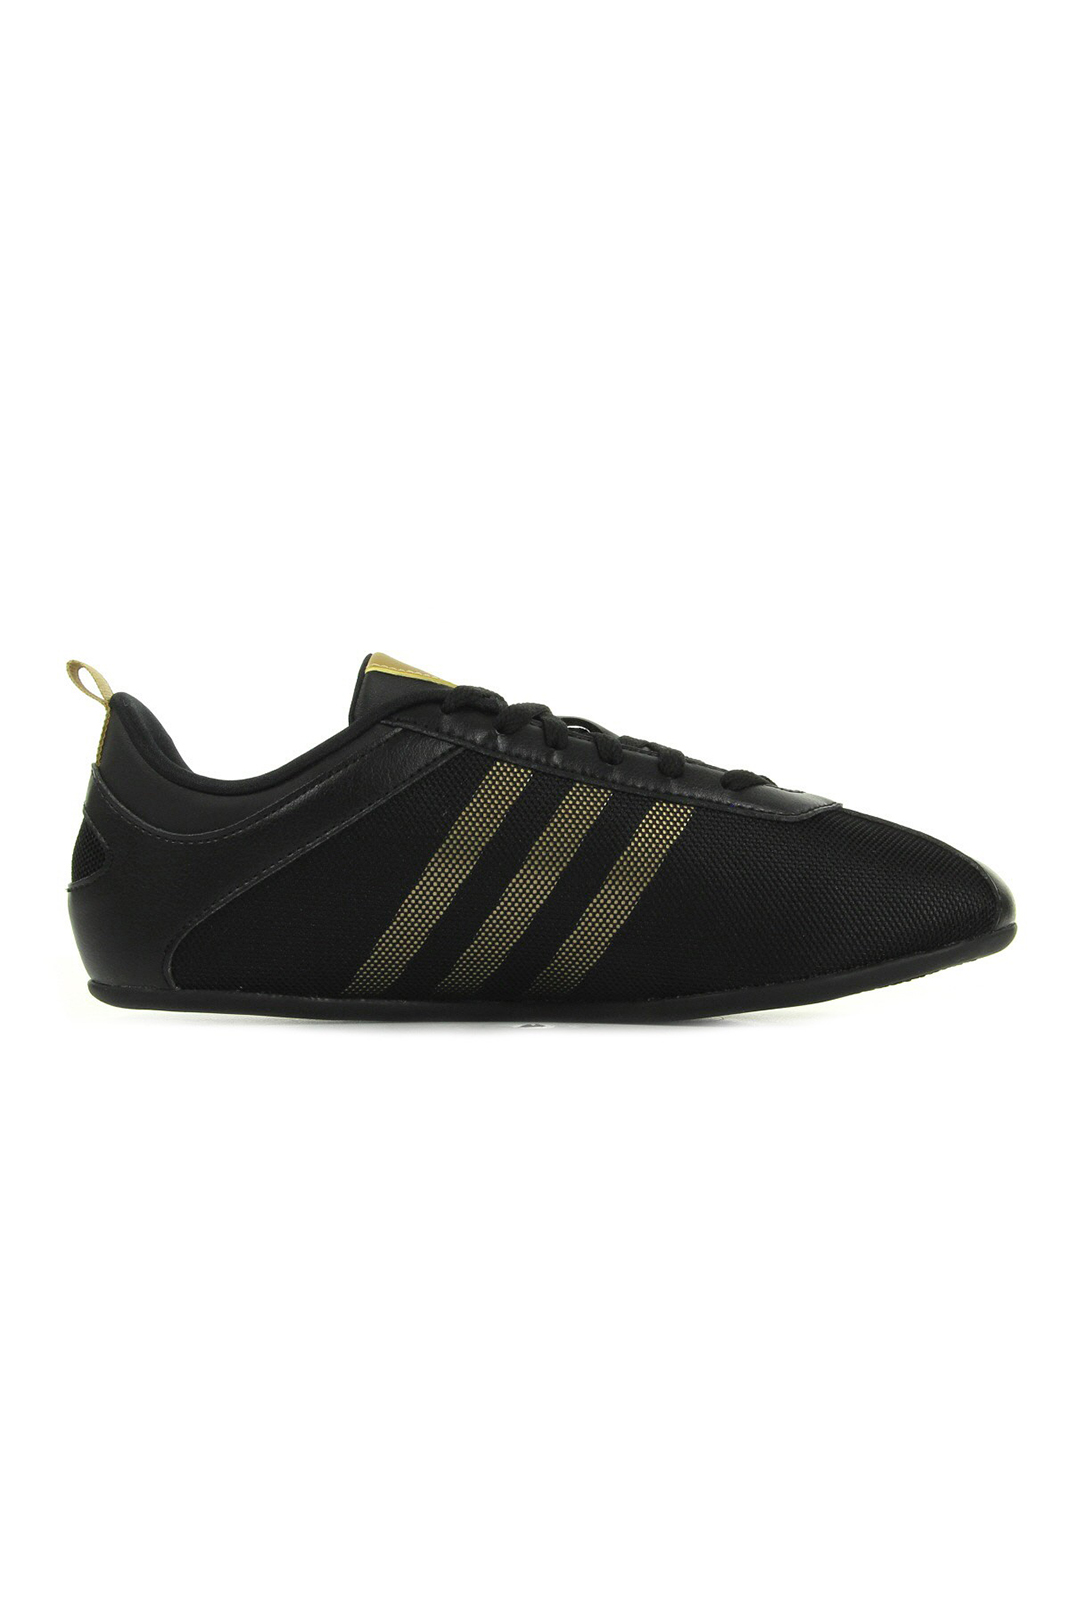 Baskets / Sneakers  Adidas F98842 MOTION W BLACK